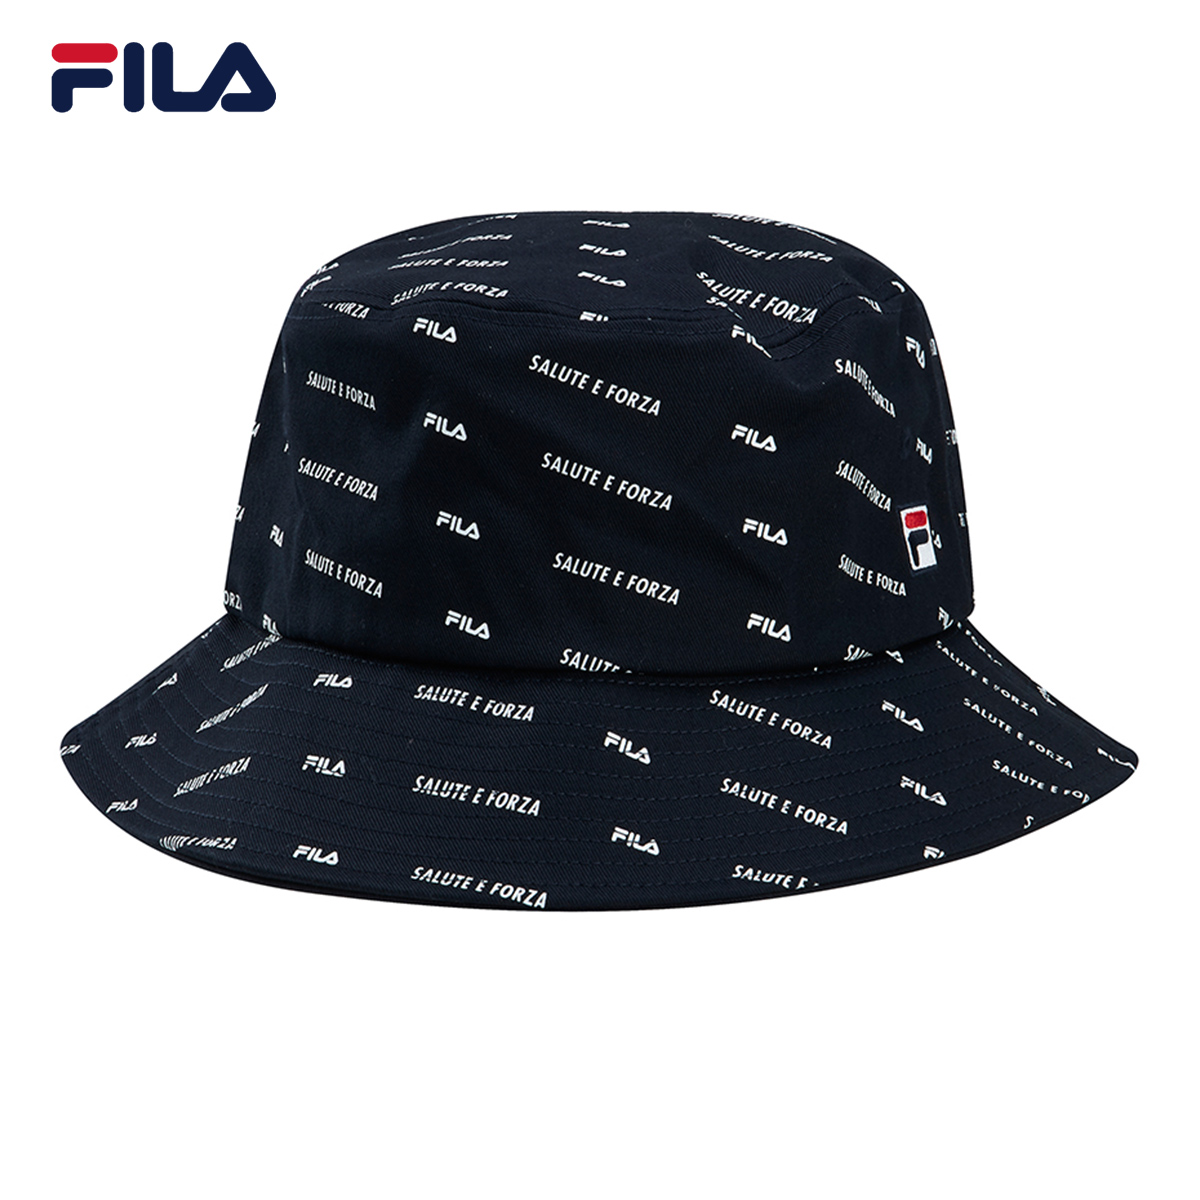 FILA Philae official couple fishermans hat 2021 summer new full print sports fisherman hat mens and womens round cap